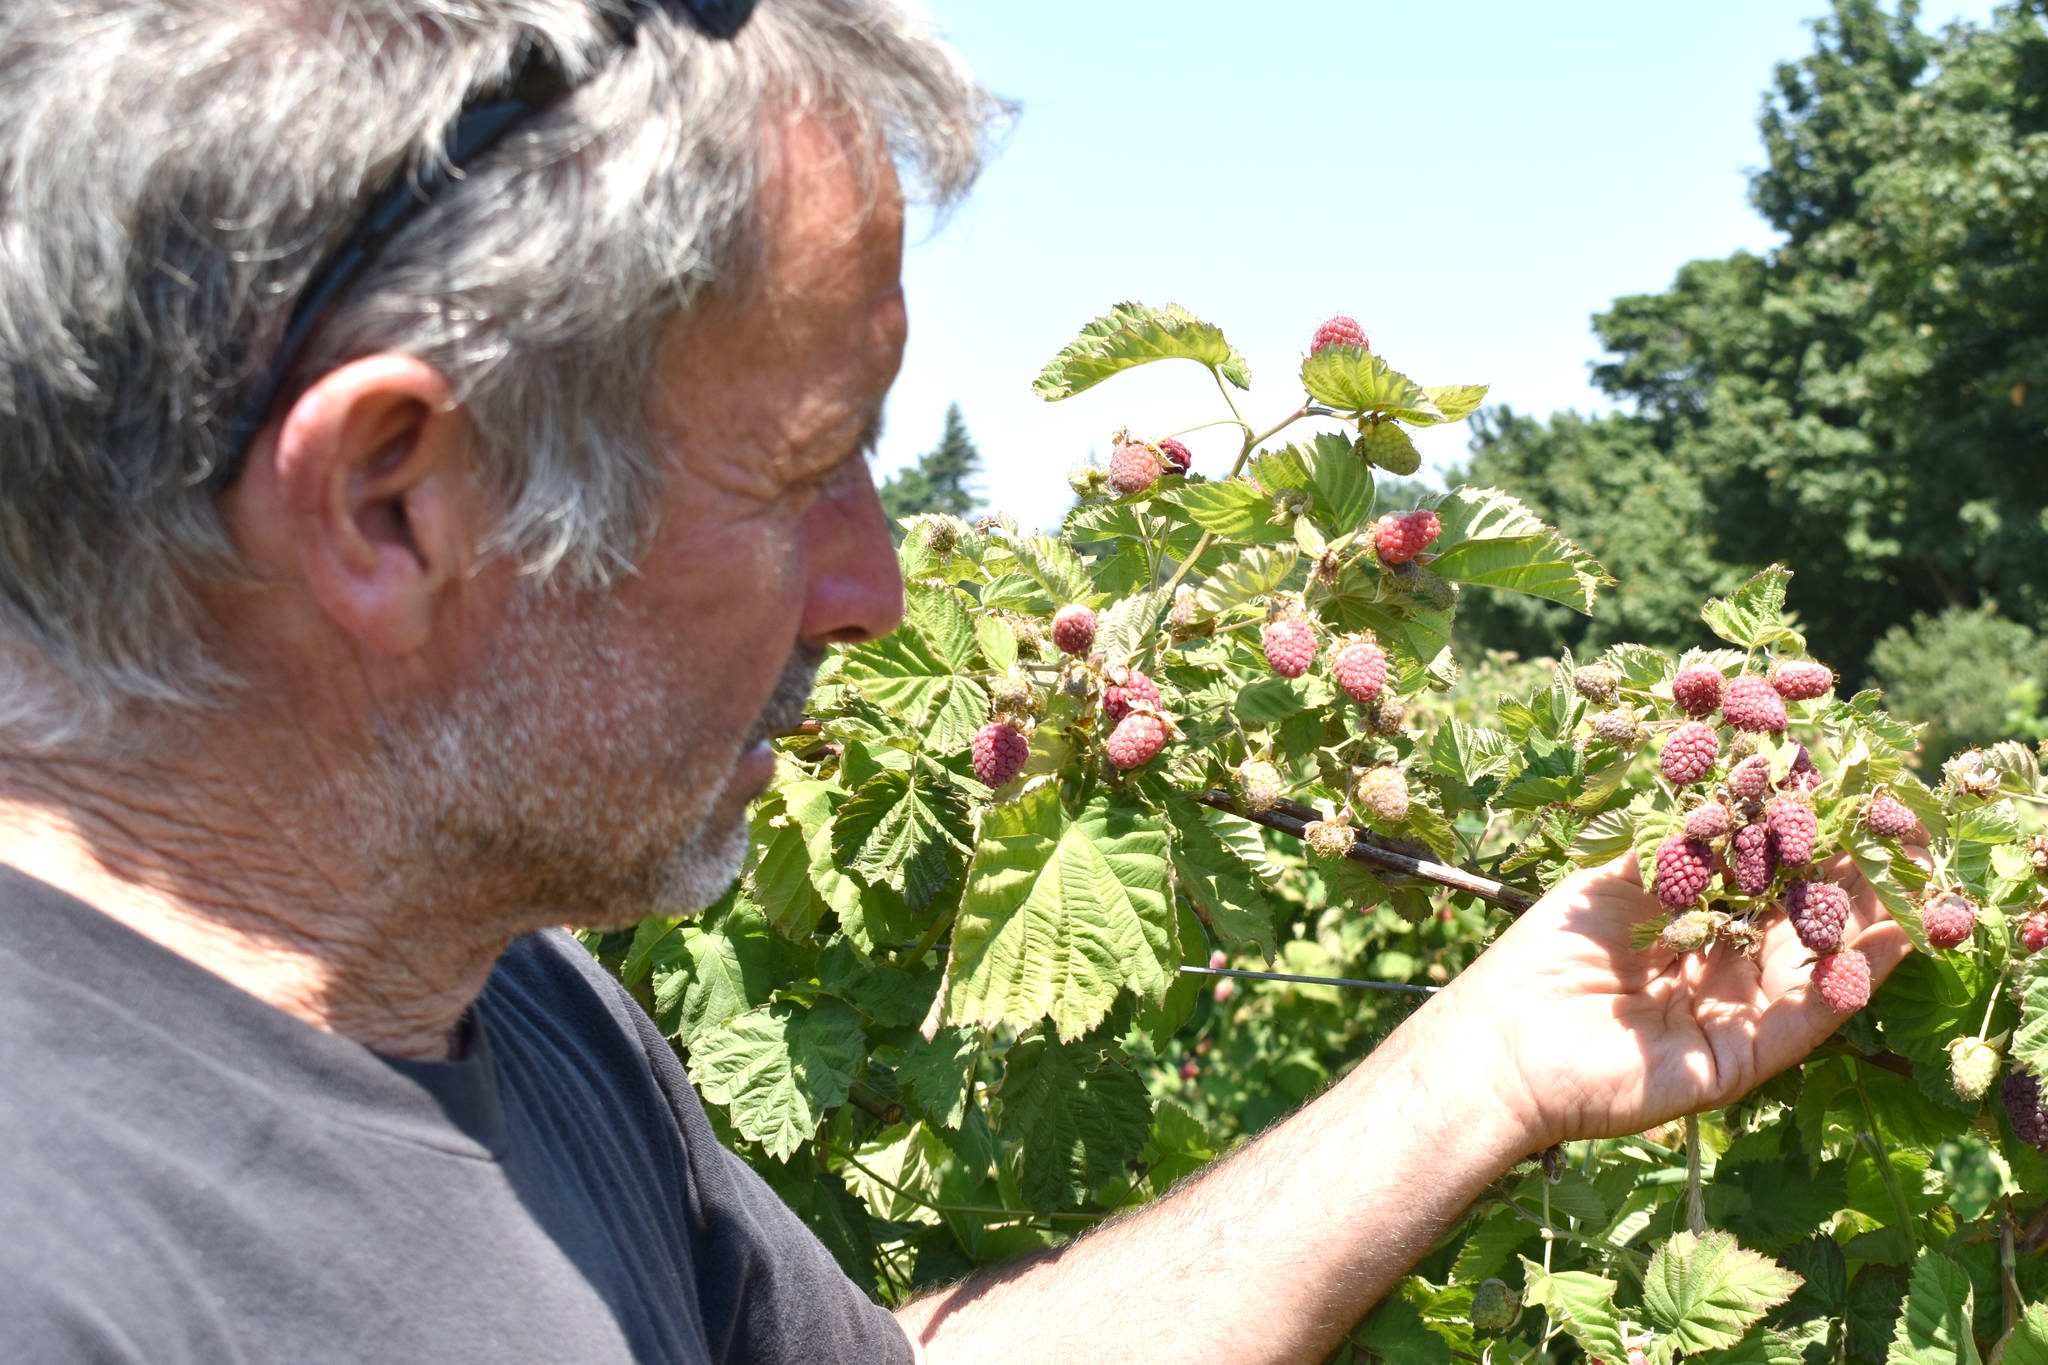 Tom Michell of Michell's Farm outside Victoria shows damage that heat caused on his raspberry crop. (Wolf Depner/News Staff)